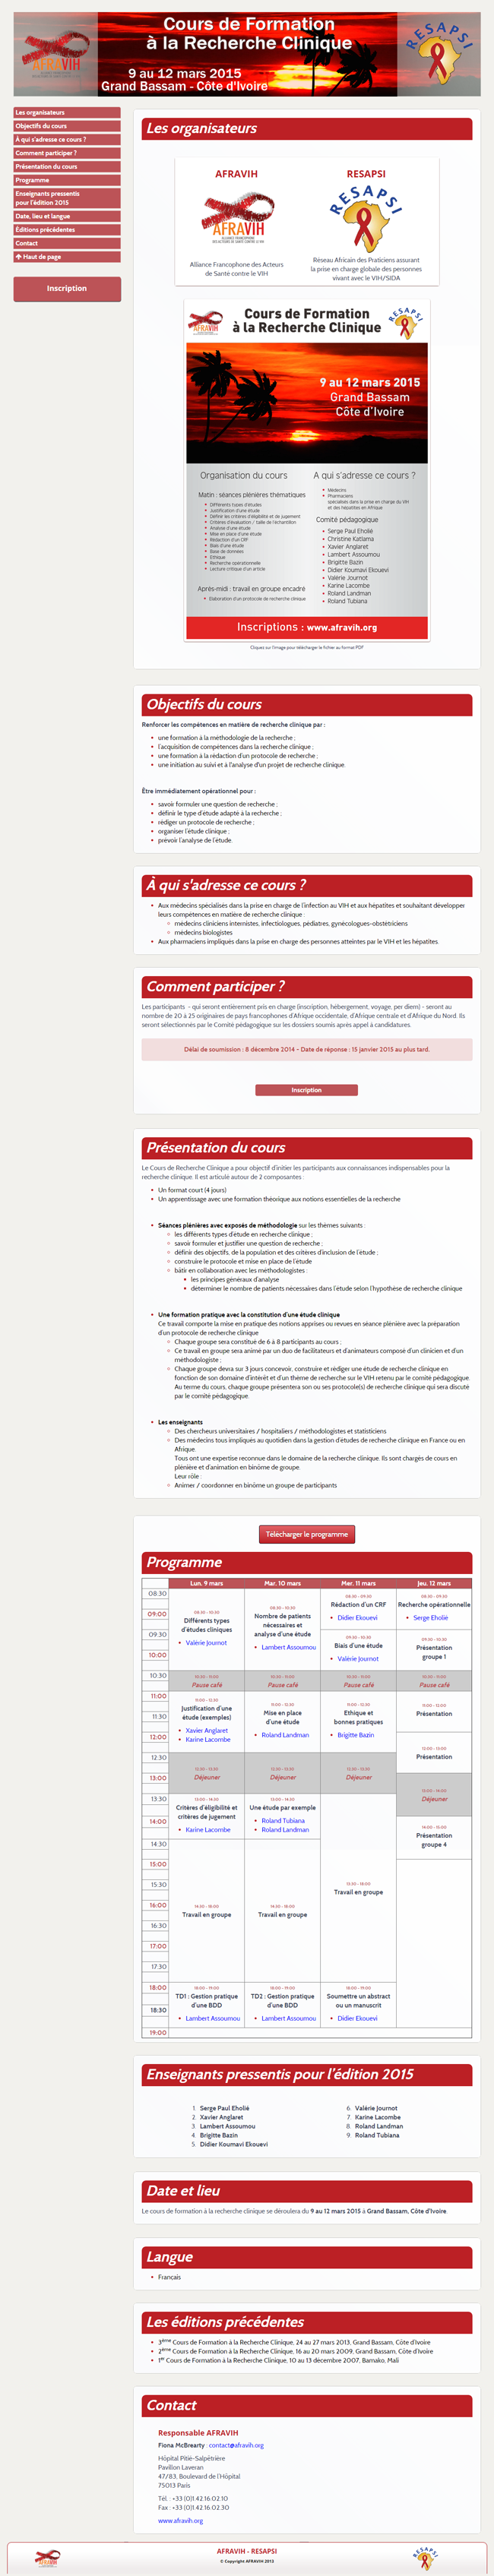 Gestion de manifestation - Site promotionnel